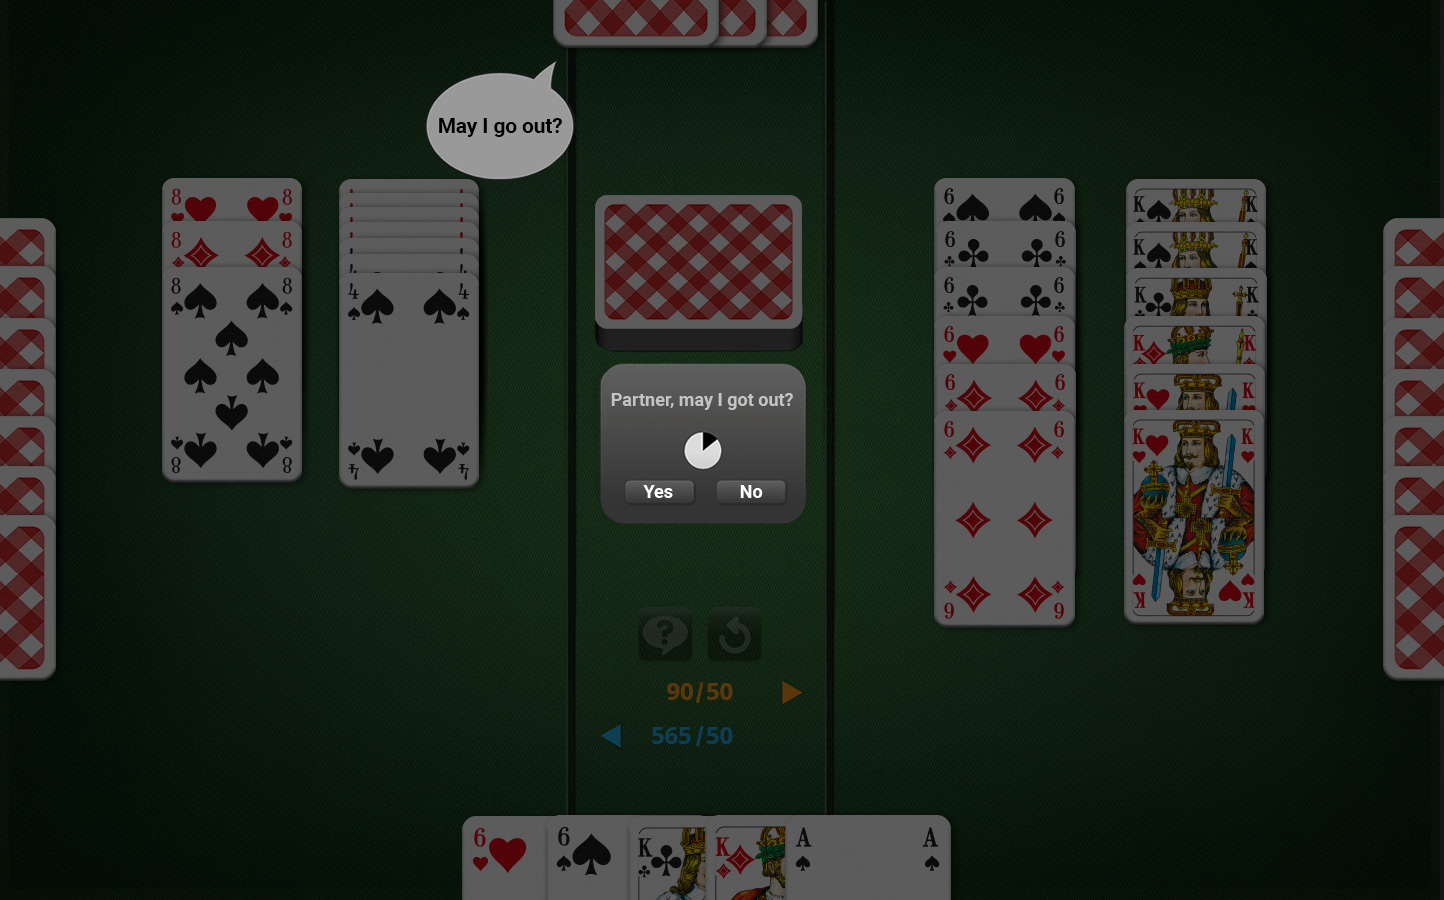 Lesson 4: Ask for Permission in 4-Player Canasta